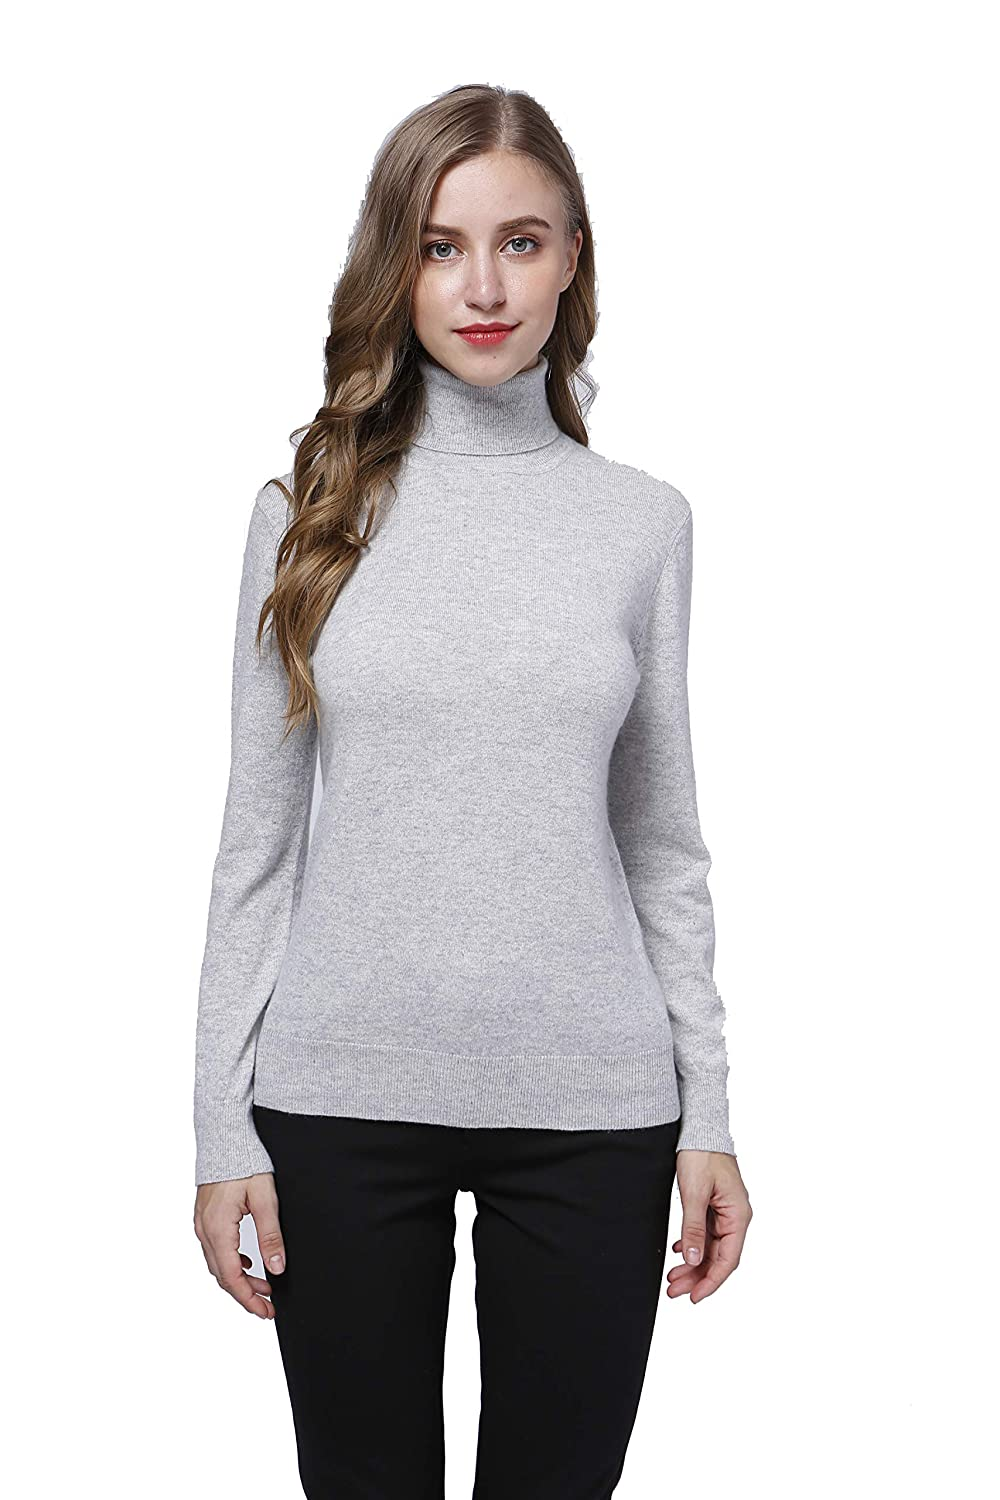 Catkin Acmewear Women's 100% Pure Cashmere Long Sleeve Turtle Neck